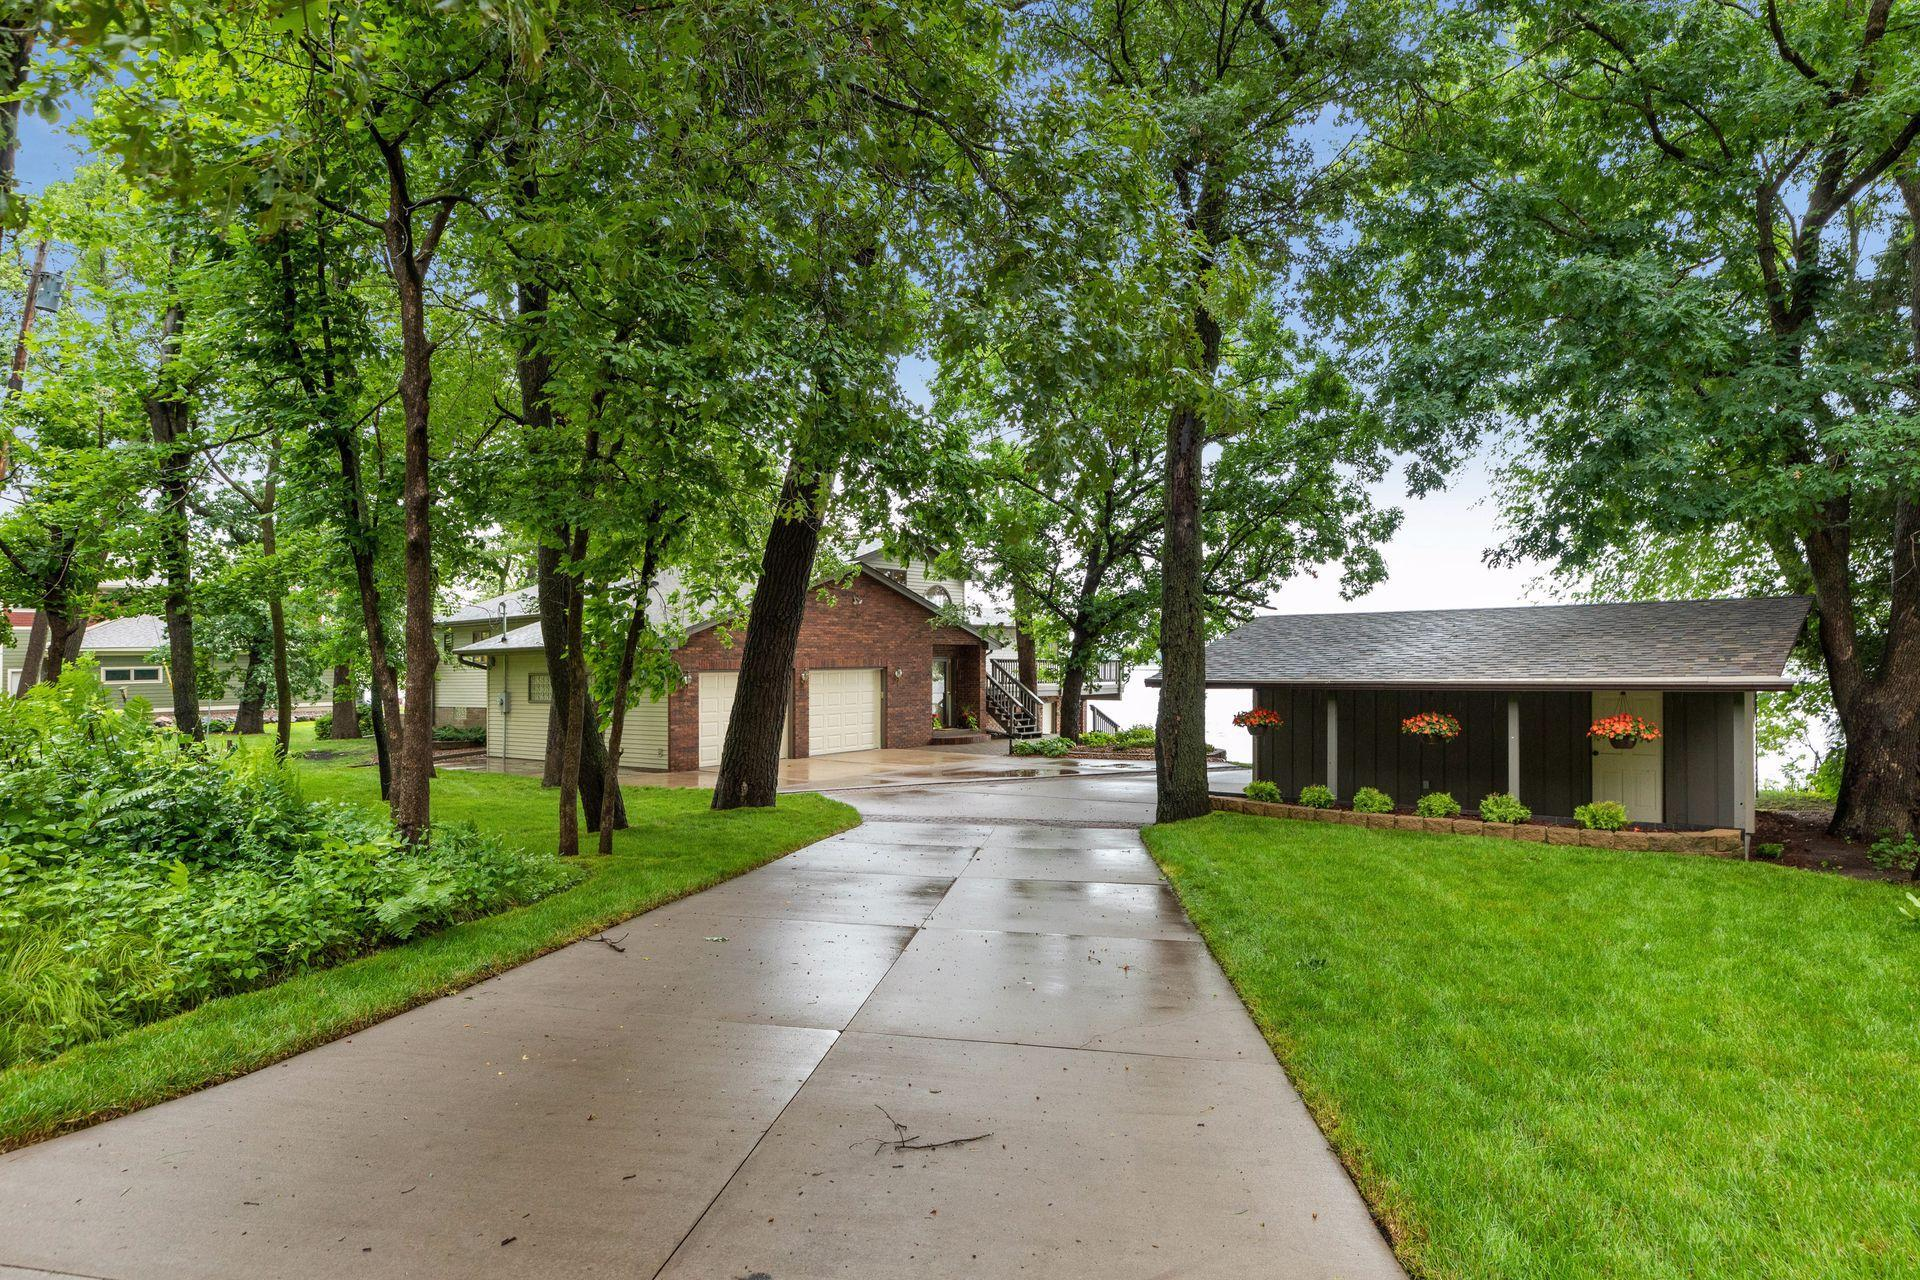 12620 182nd Street N Property Photo - Scandia, MN real estate listing